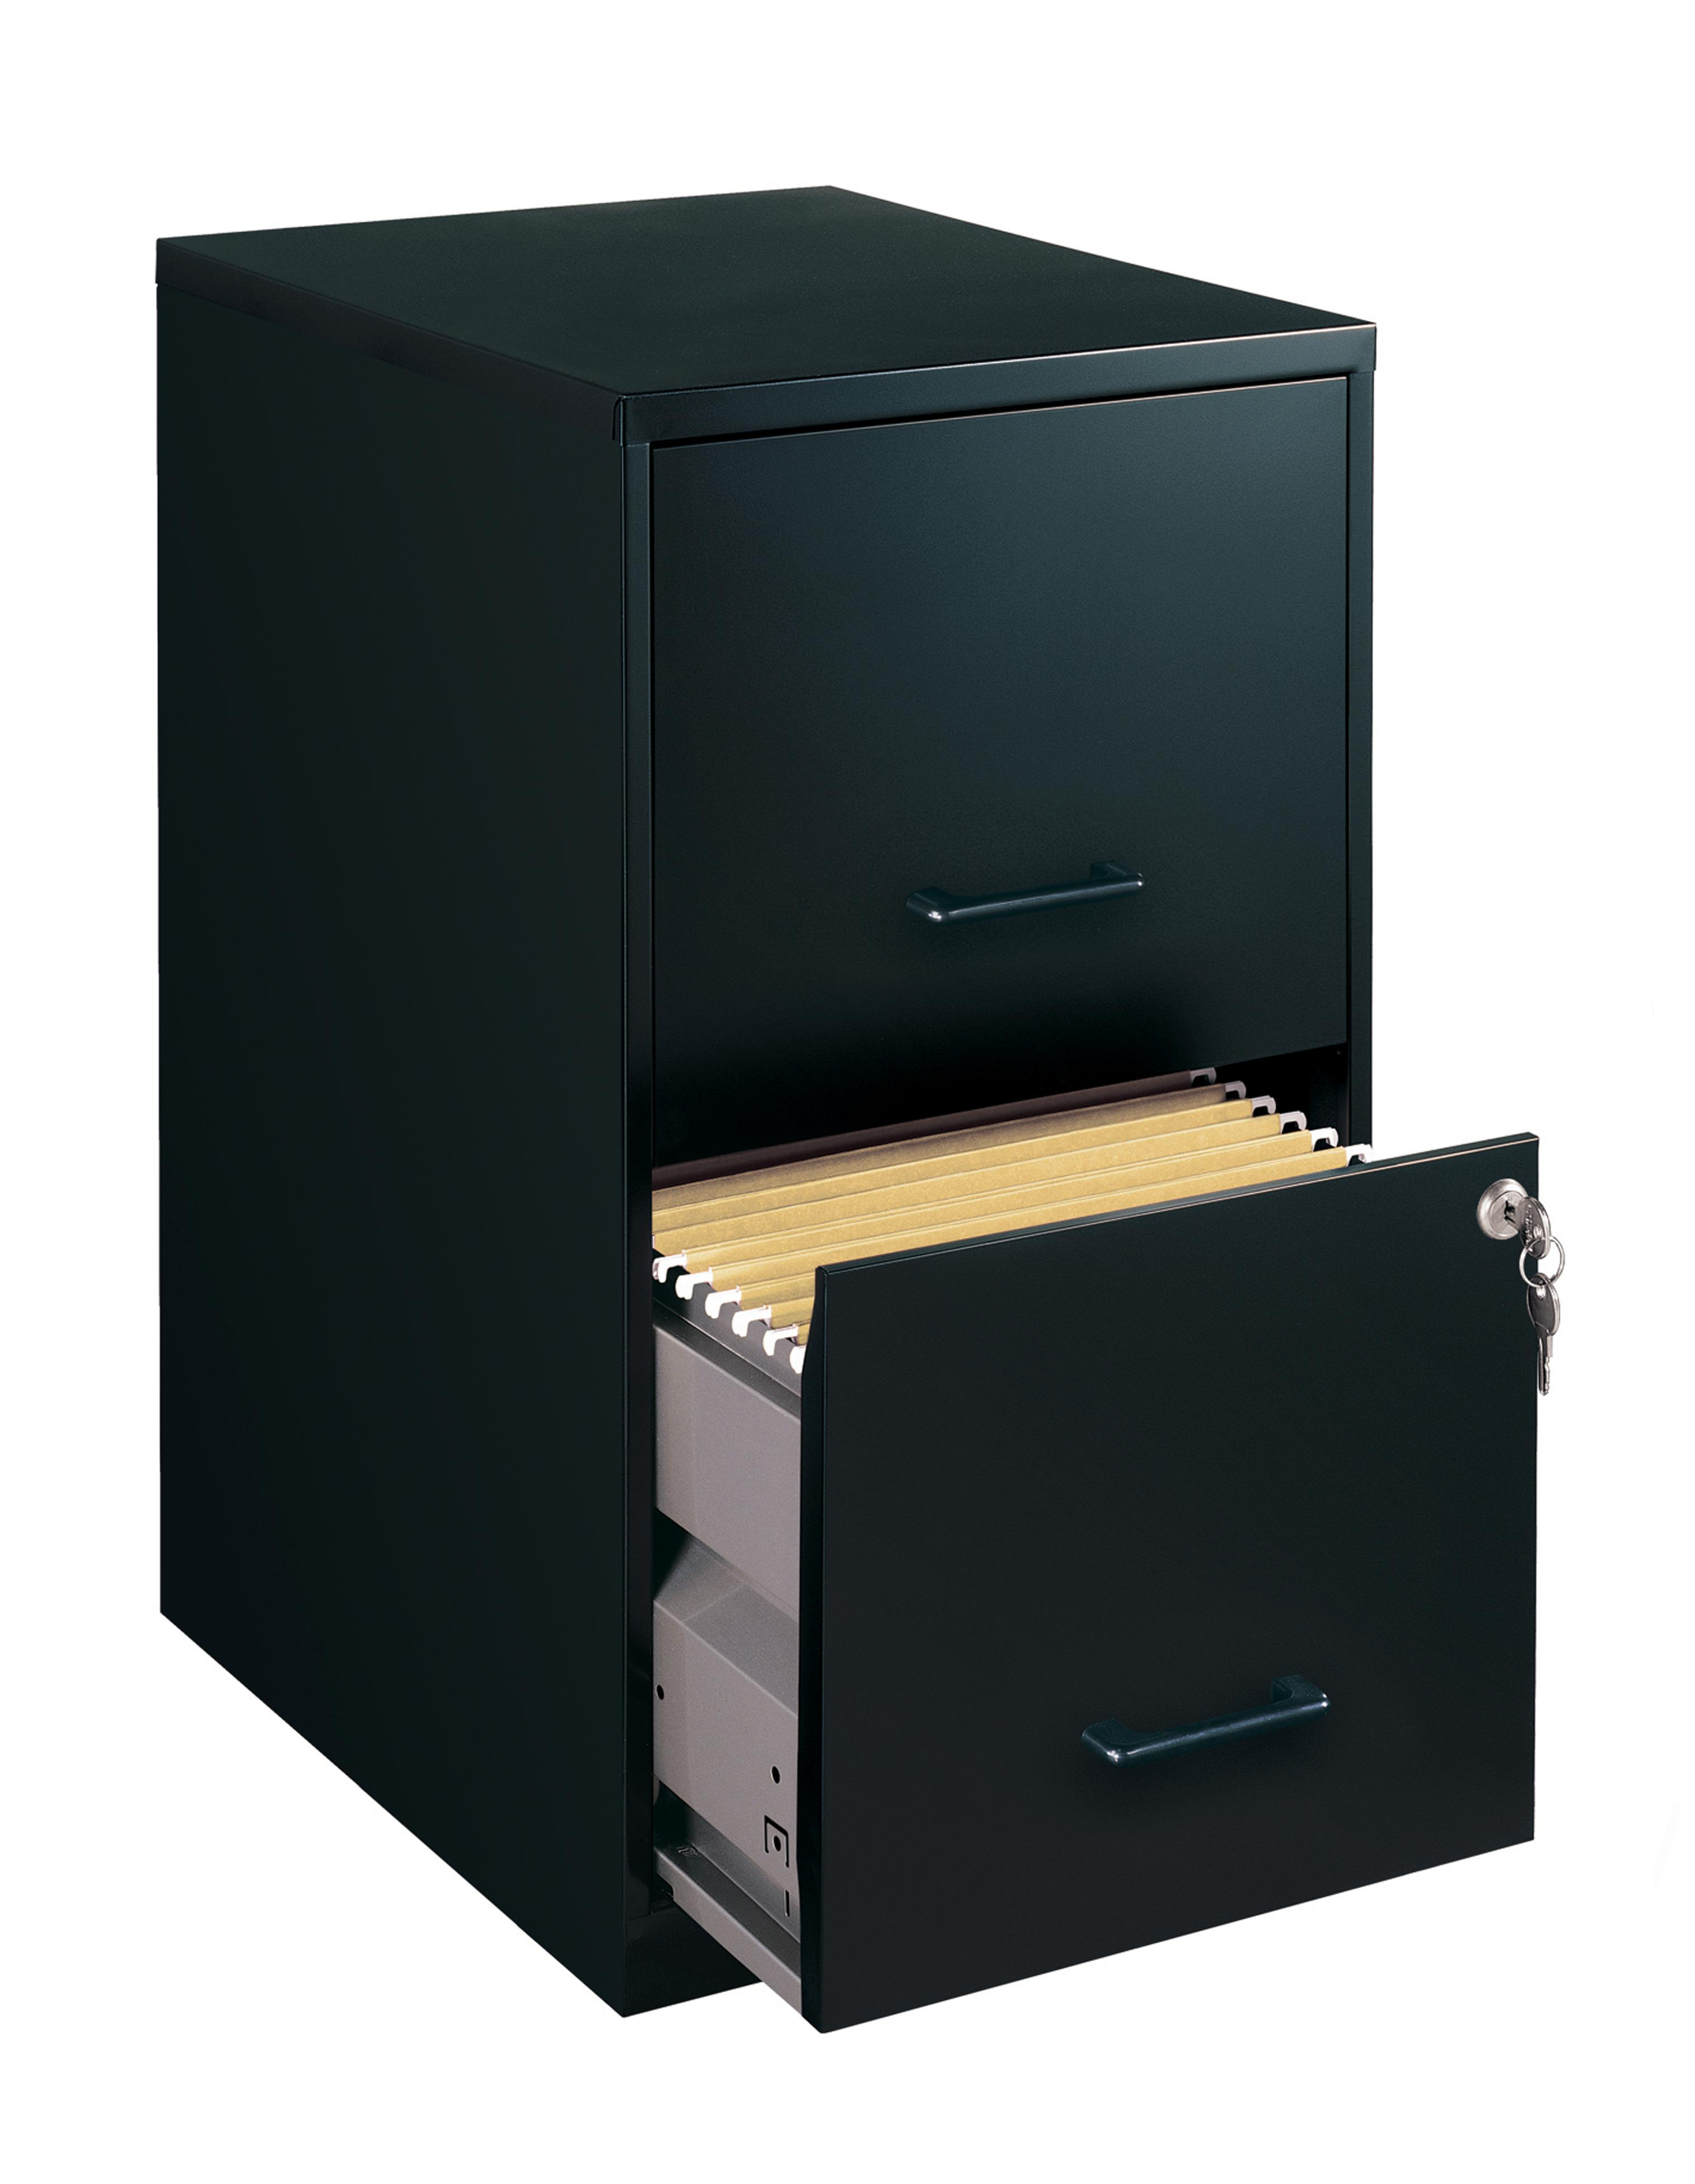 Charming ... Office Designs Black Colored 2 Drawer Steel File Cabinet   Thumbnail 2 Amazing Design